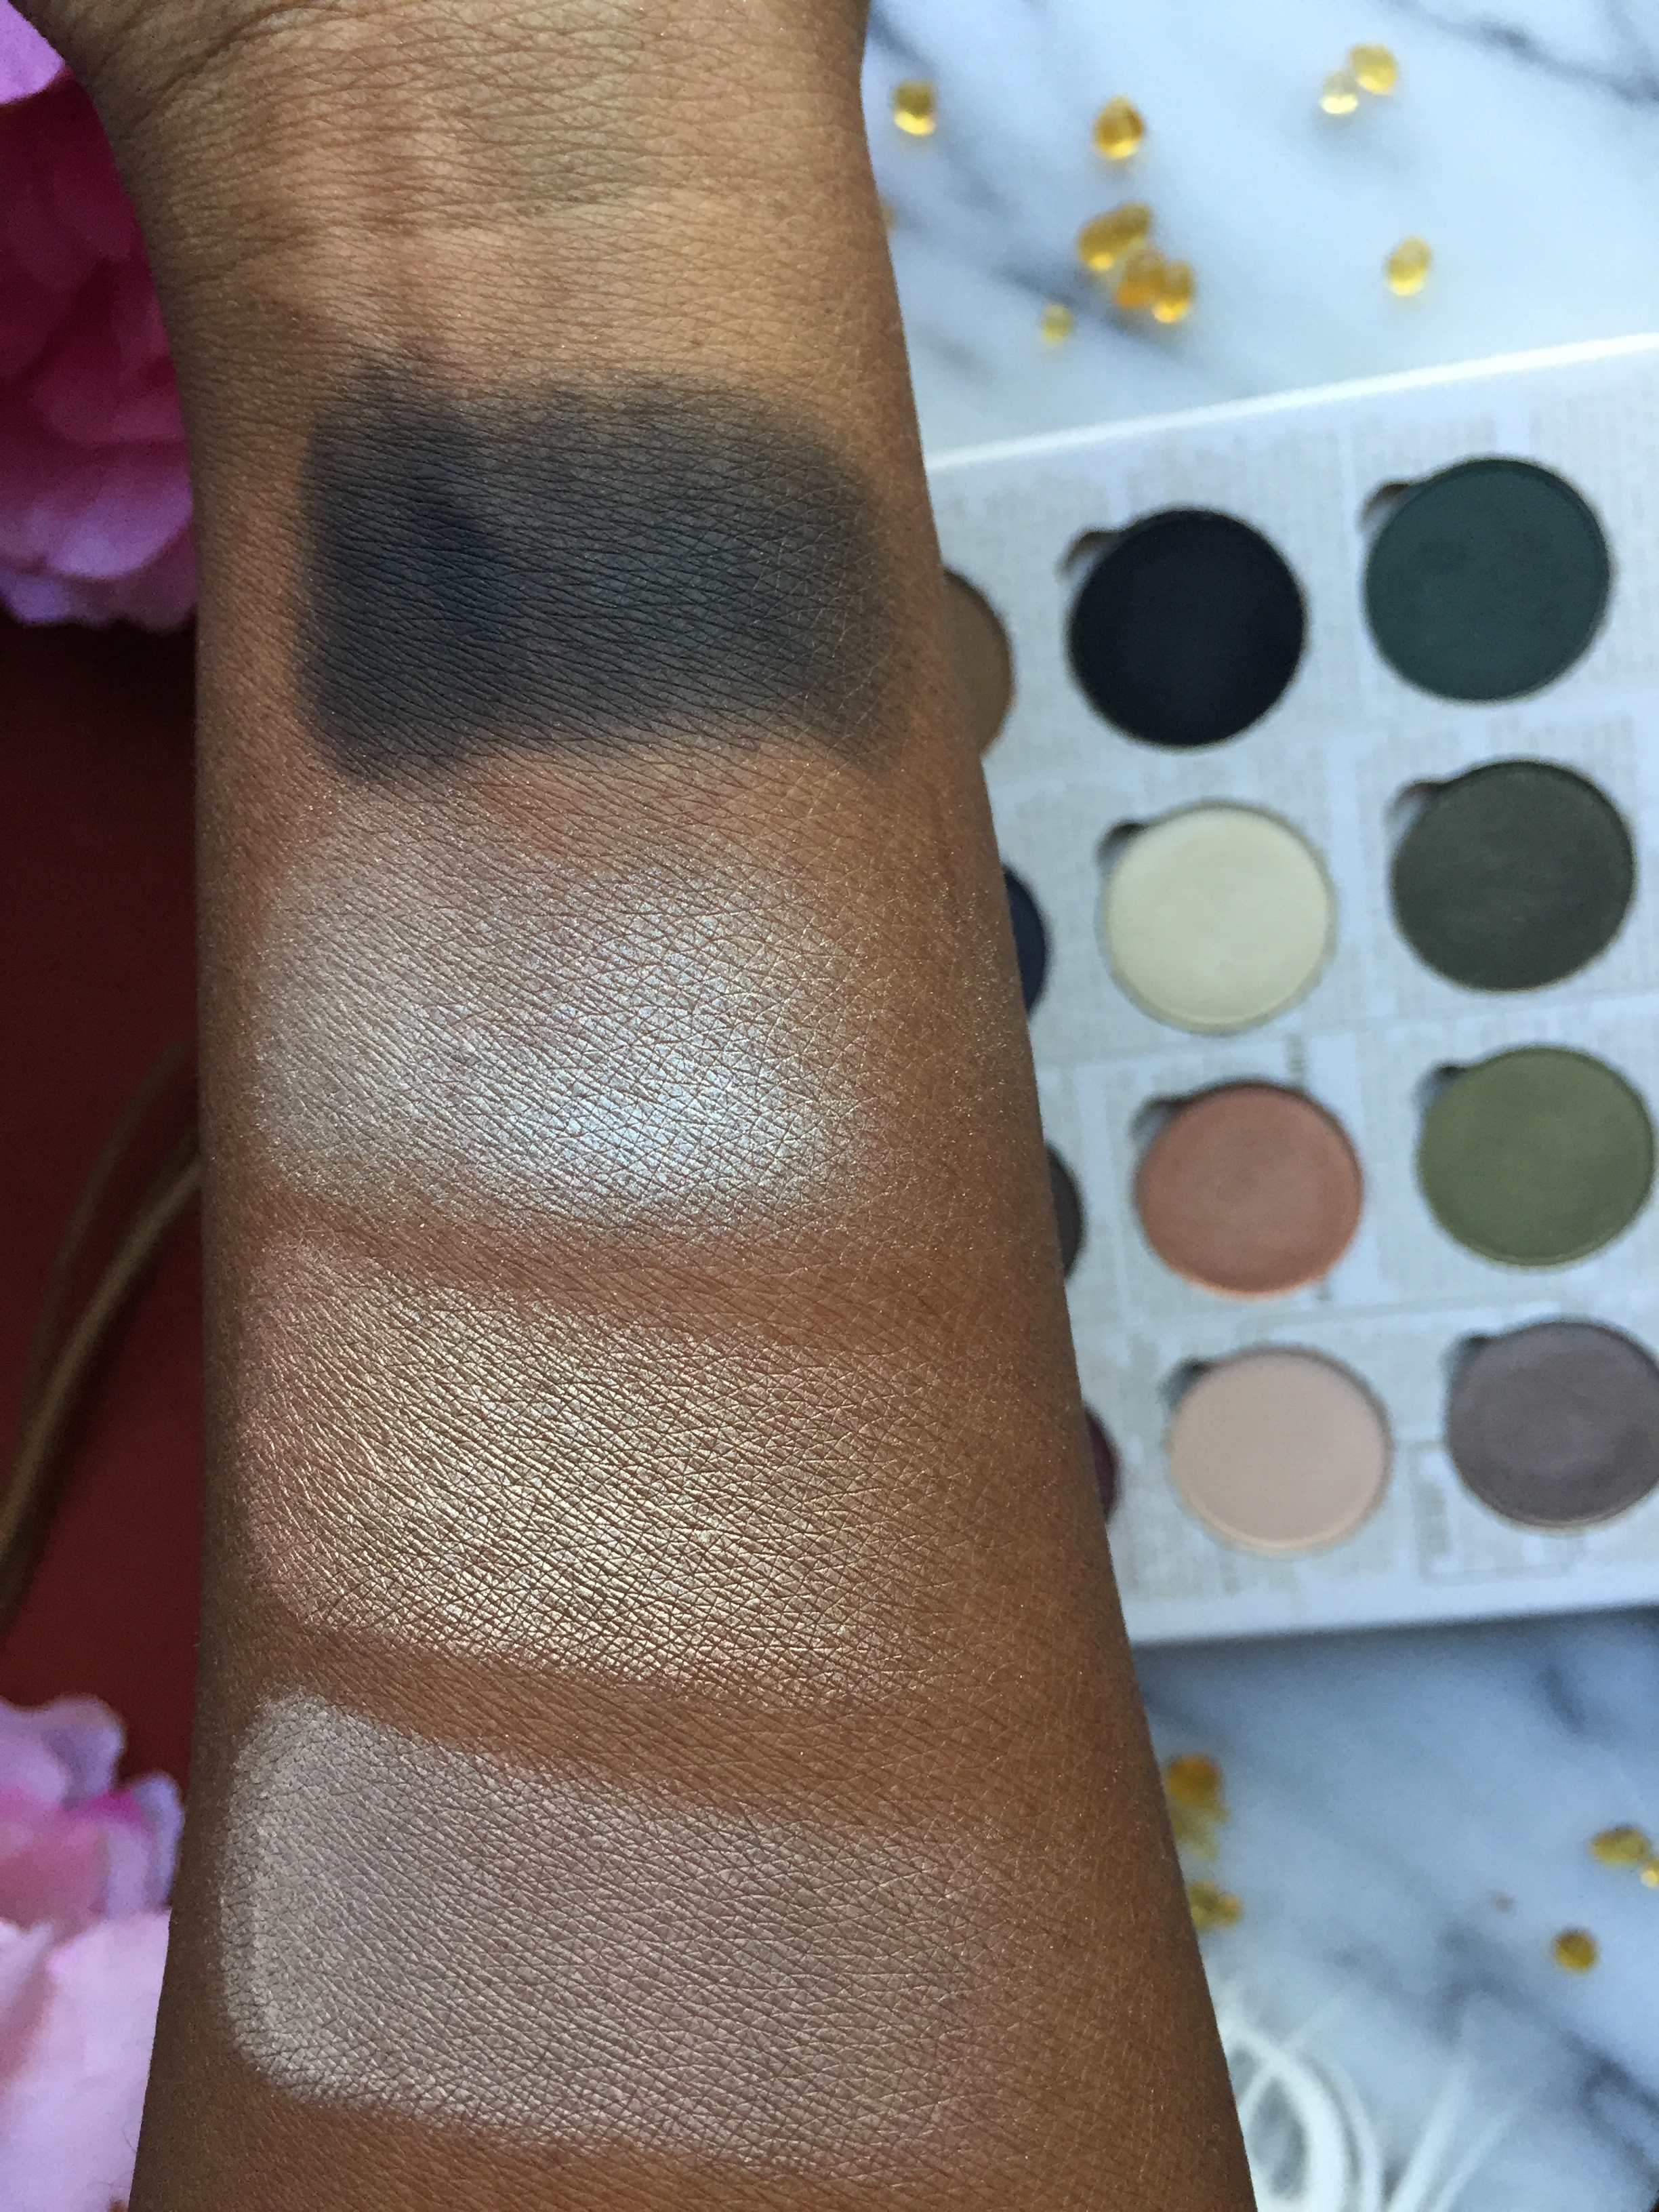 Brush Swatches L to R: #24, #21, #38 and #9